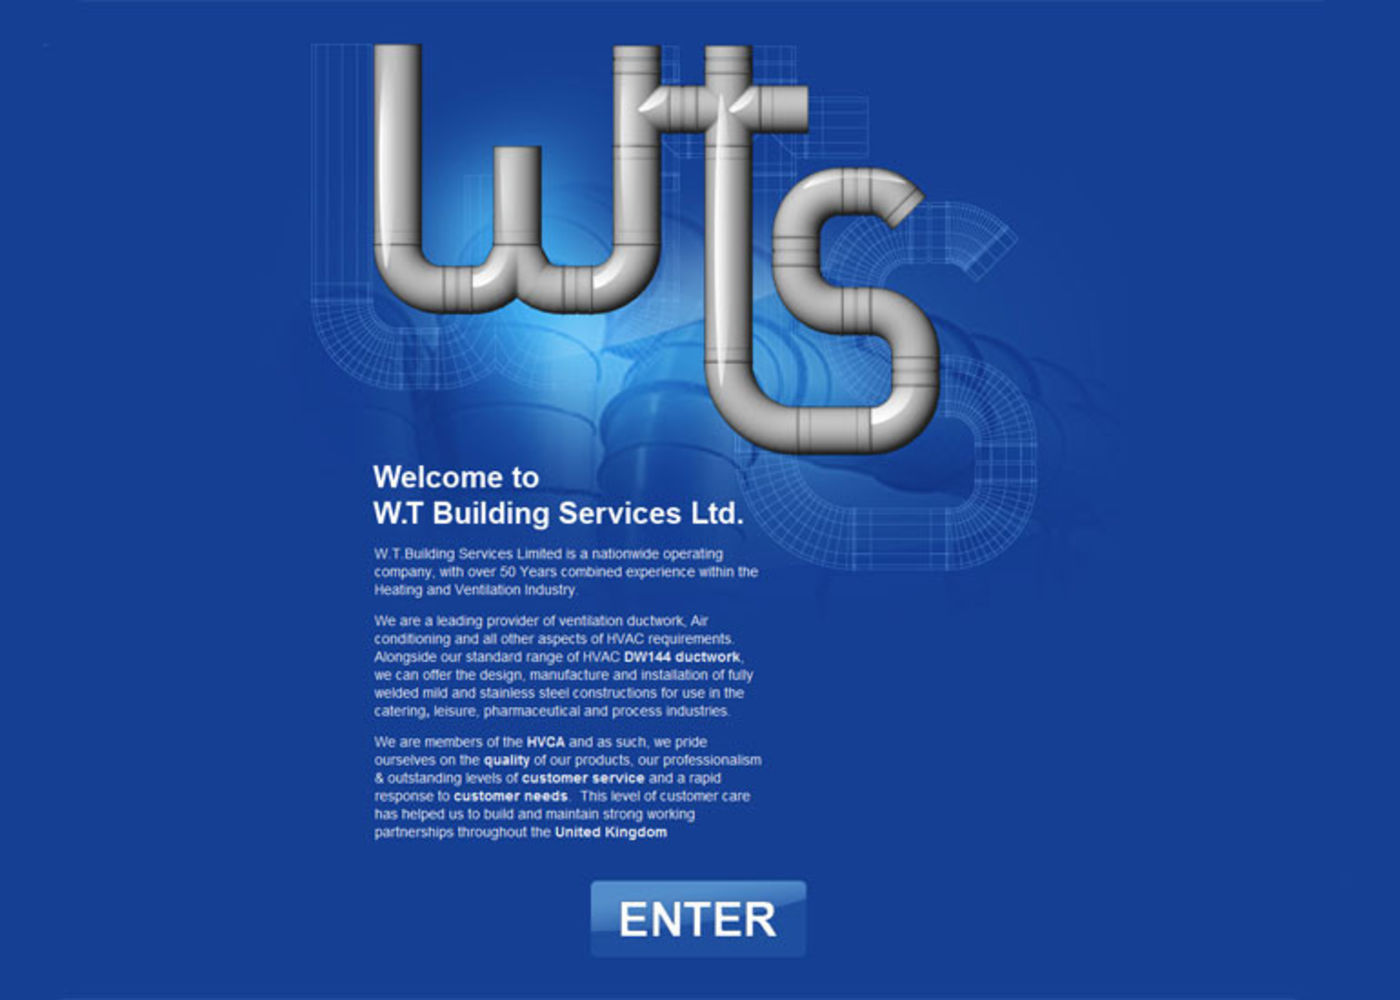 W.T. Building Services Welcome